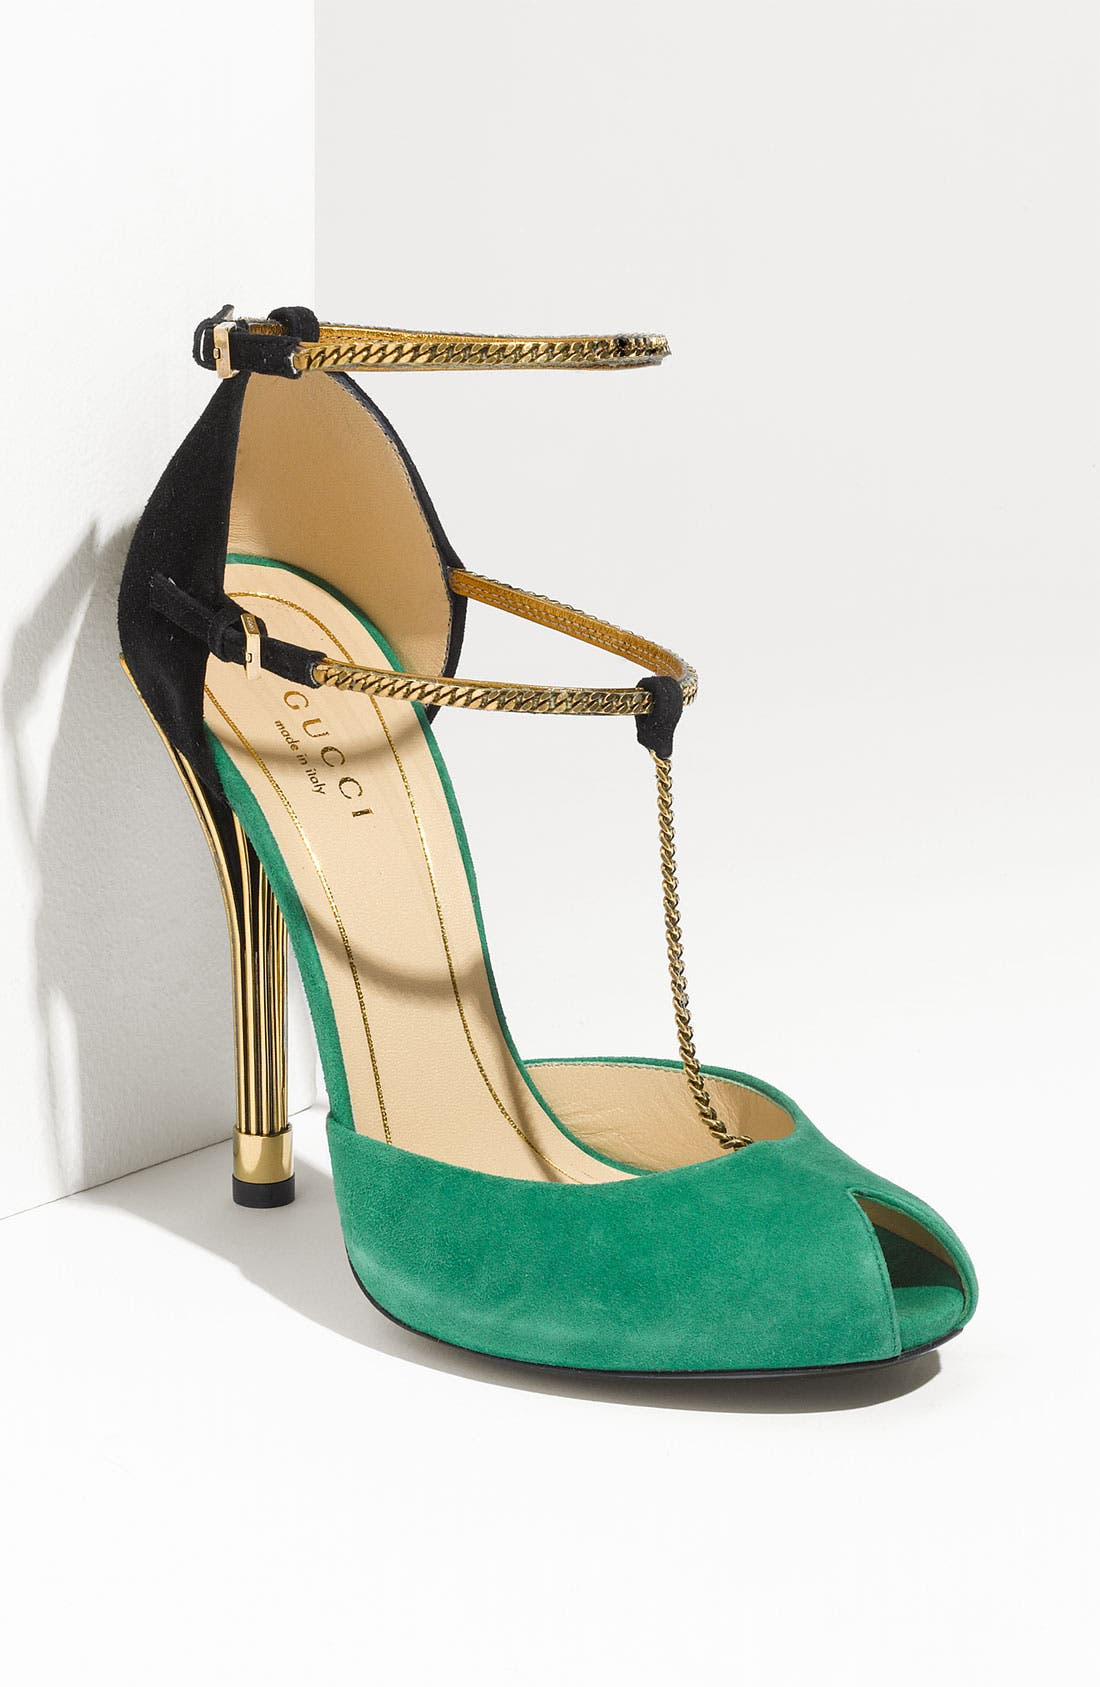 Main Image - Gucci Chain Strap Mary Jane Sandal